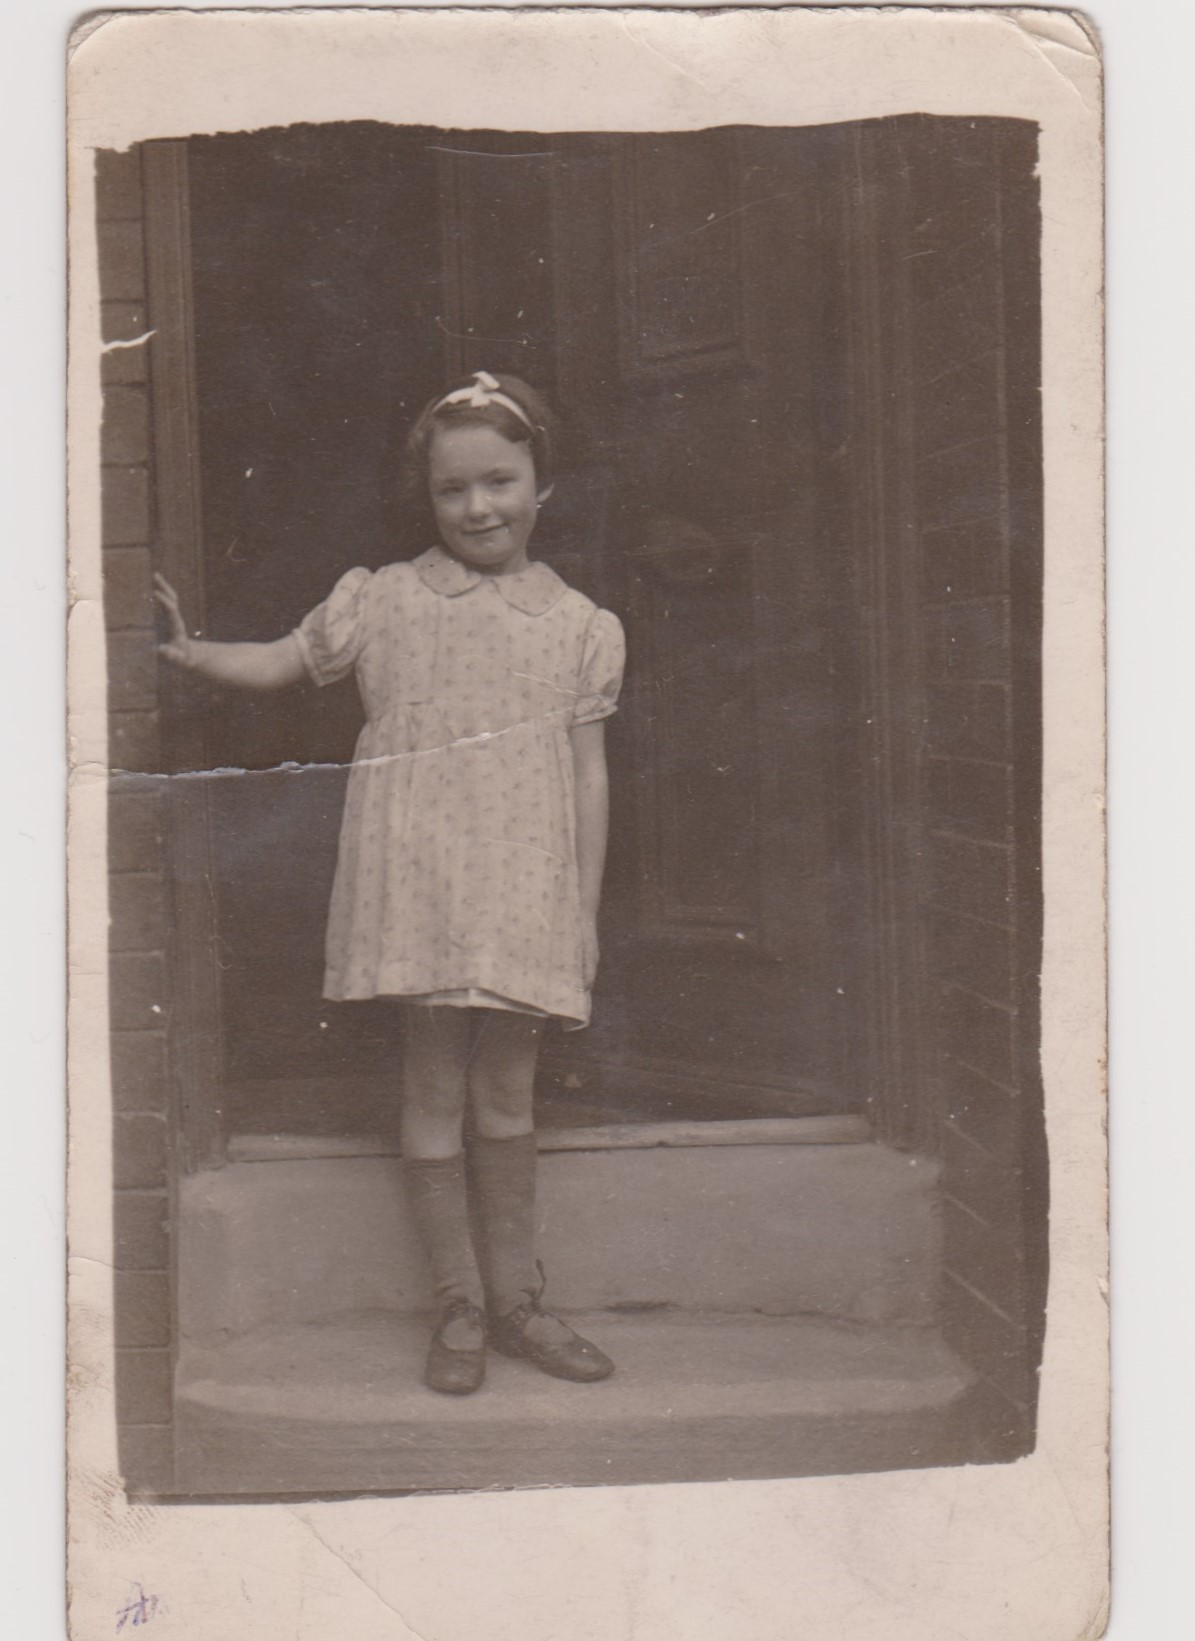 Photo of Annie Clarke standing on the doorstep of her house in Marley Place, Beeston